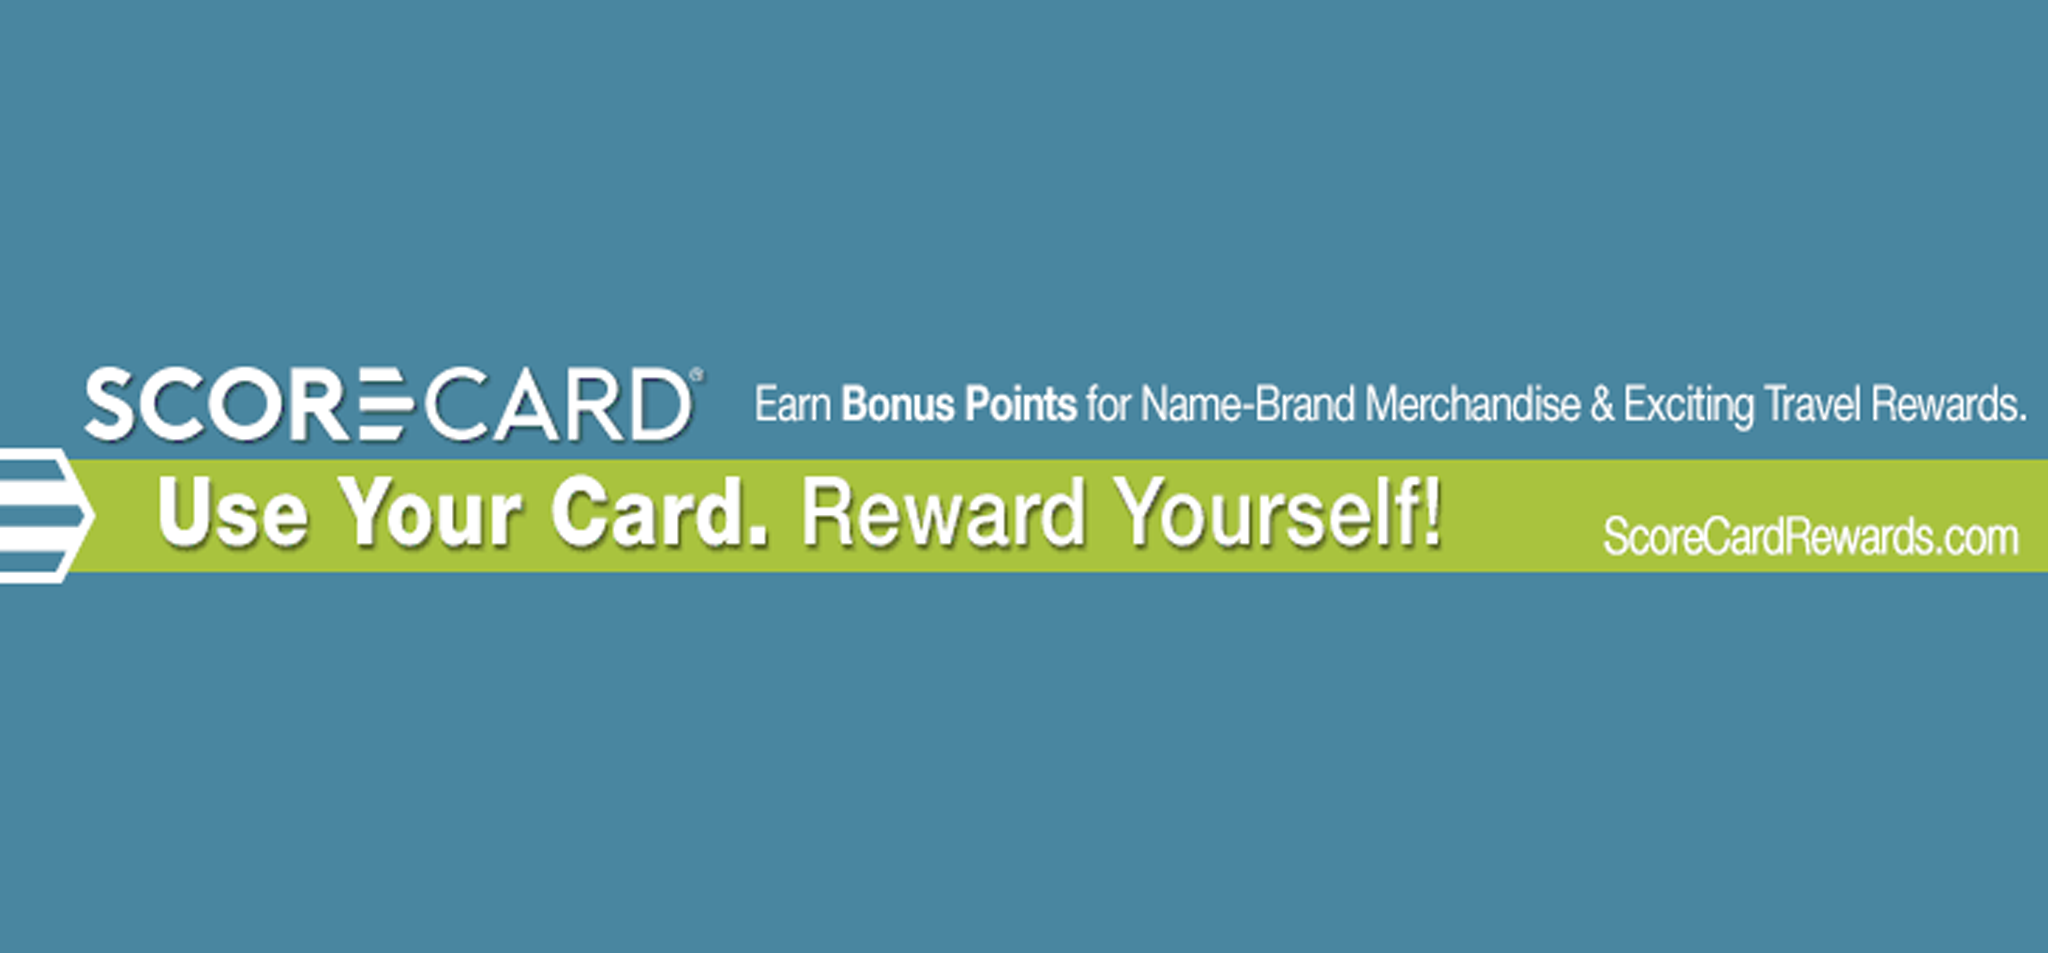 image link to the Visa Credit Card Rewards Program at Score Card Rewards.com